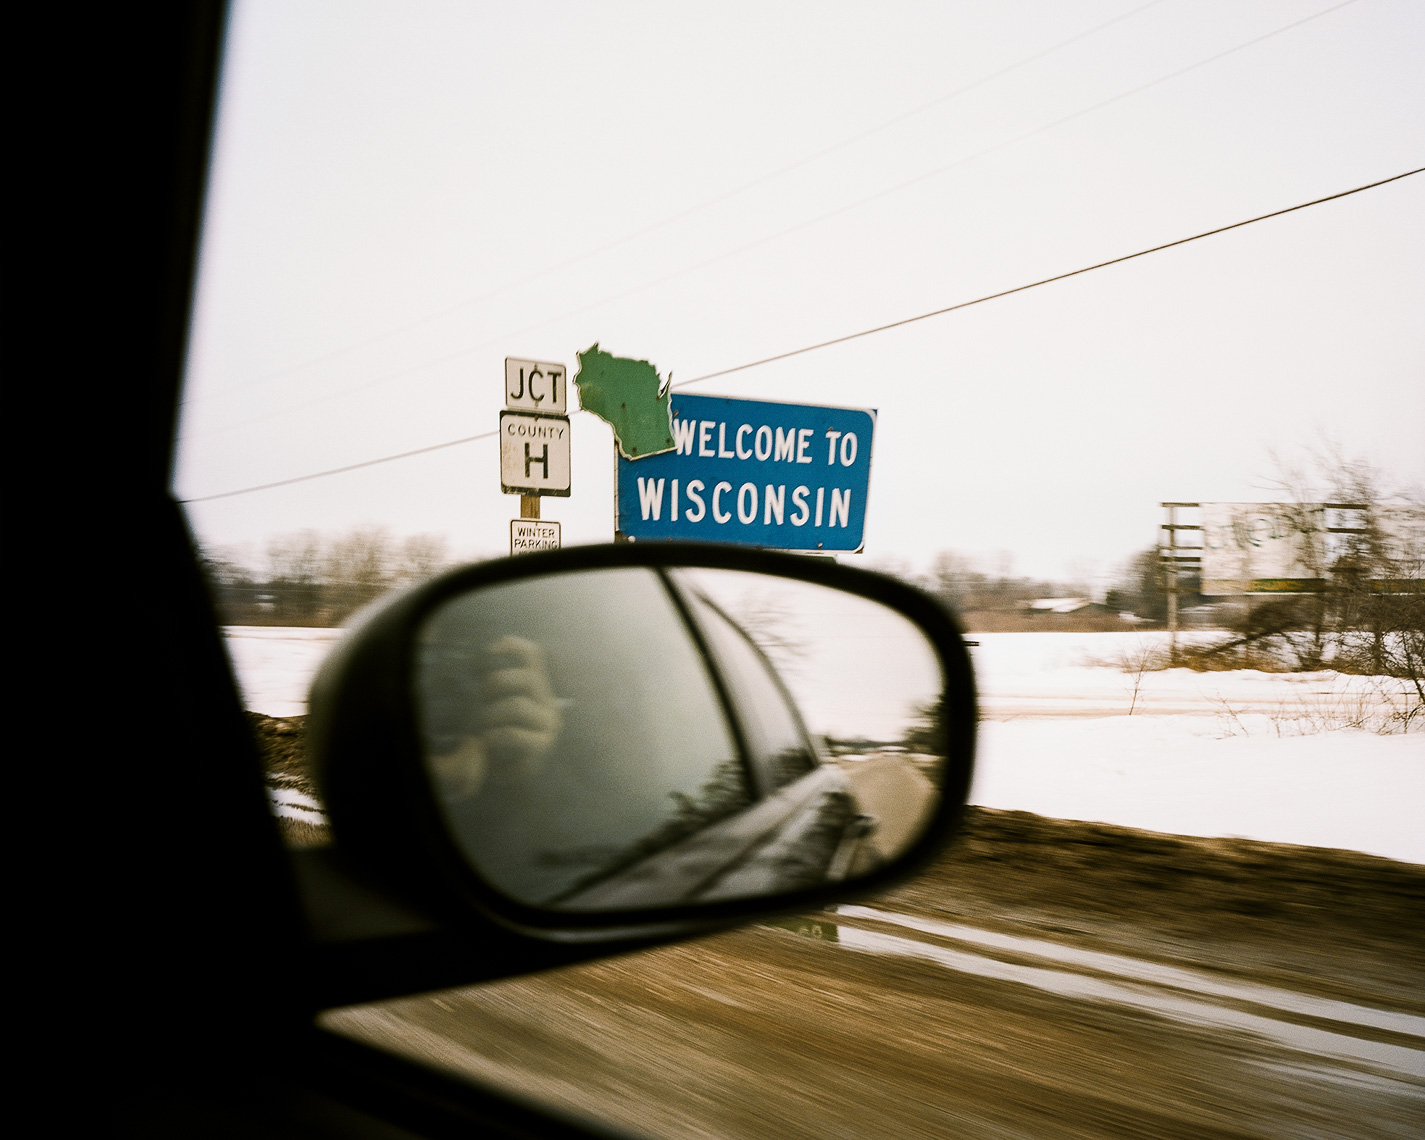 Wilmot, Wisconsin for Powder Magazine.